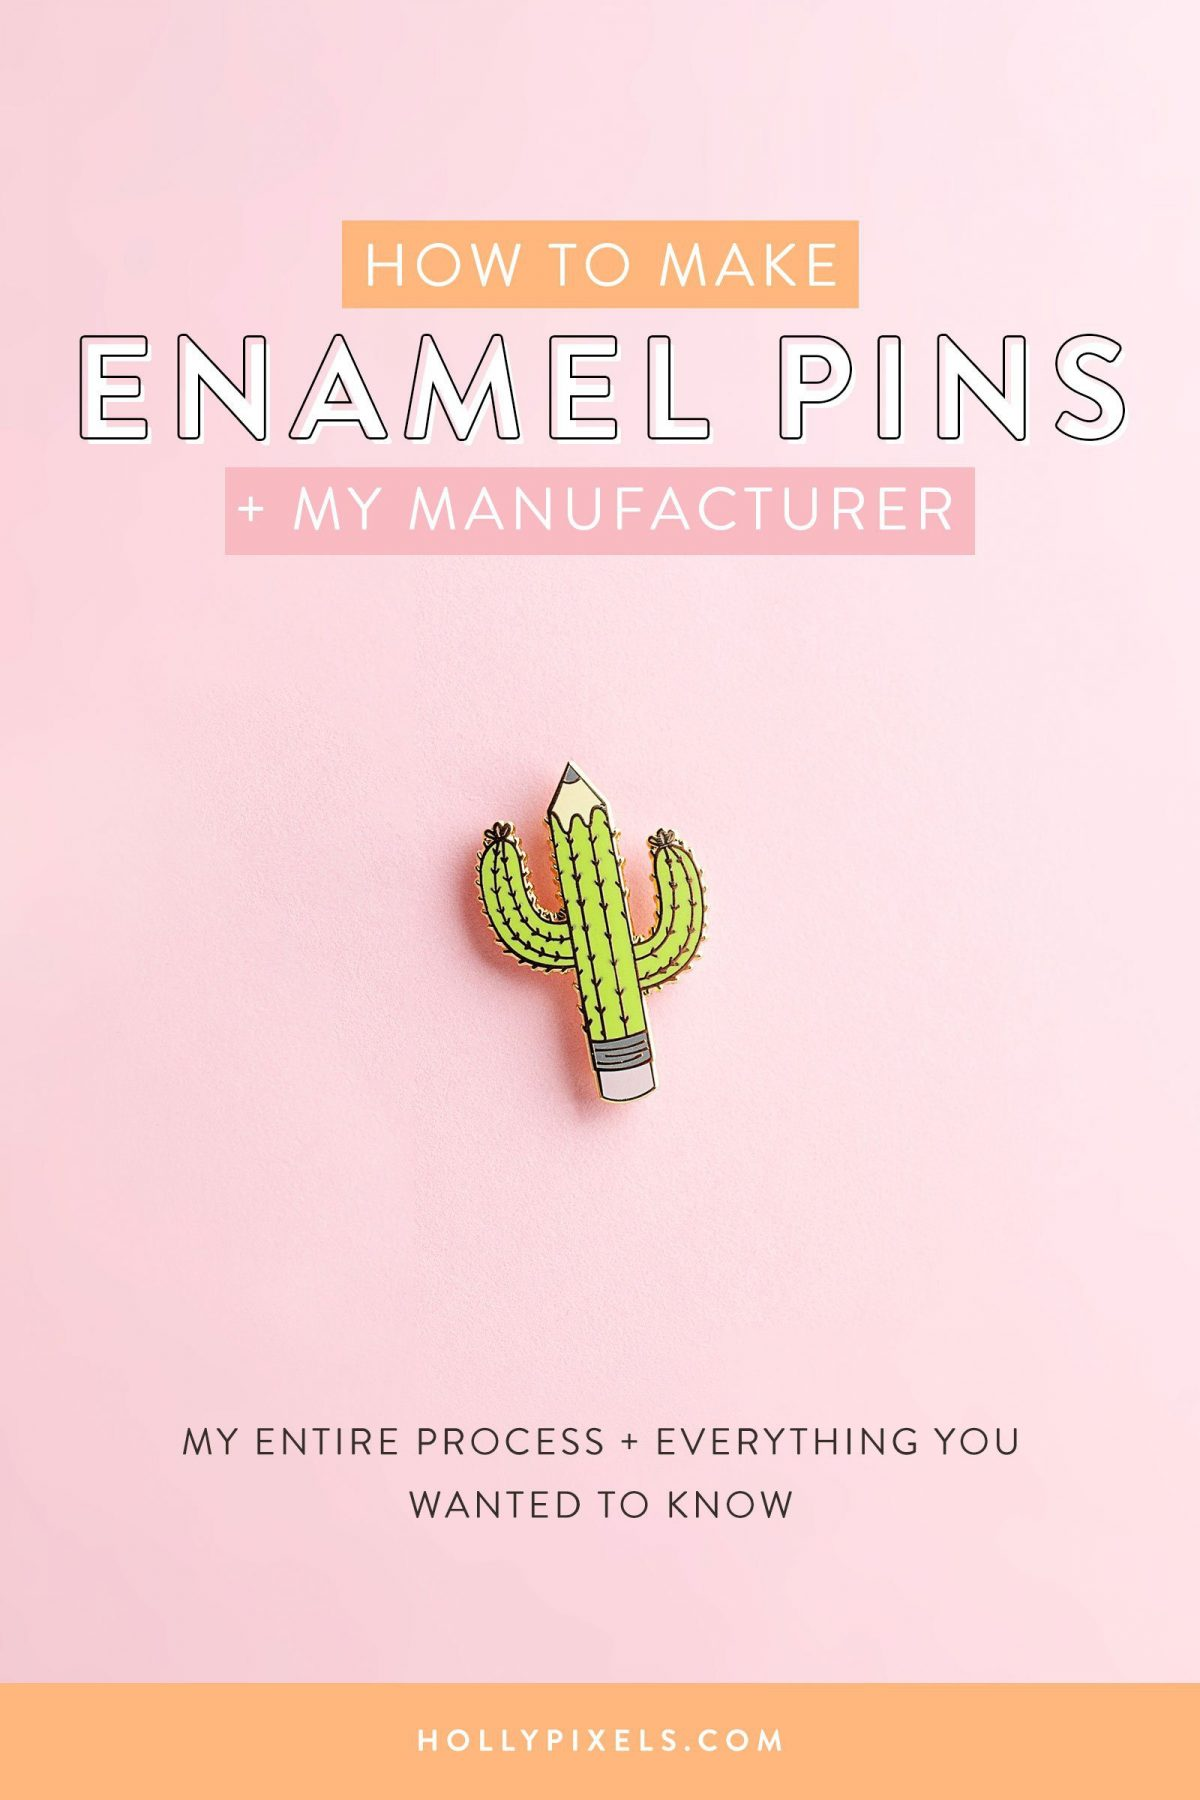 How to Make Enamel Pins From Your Artwork